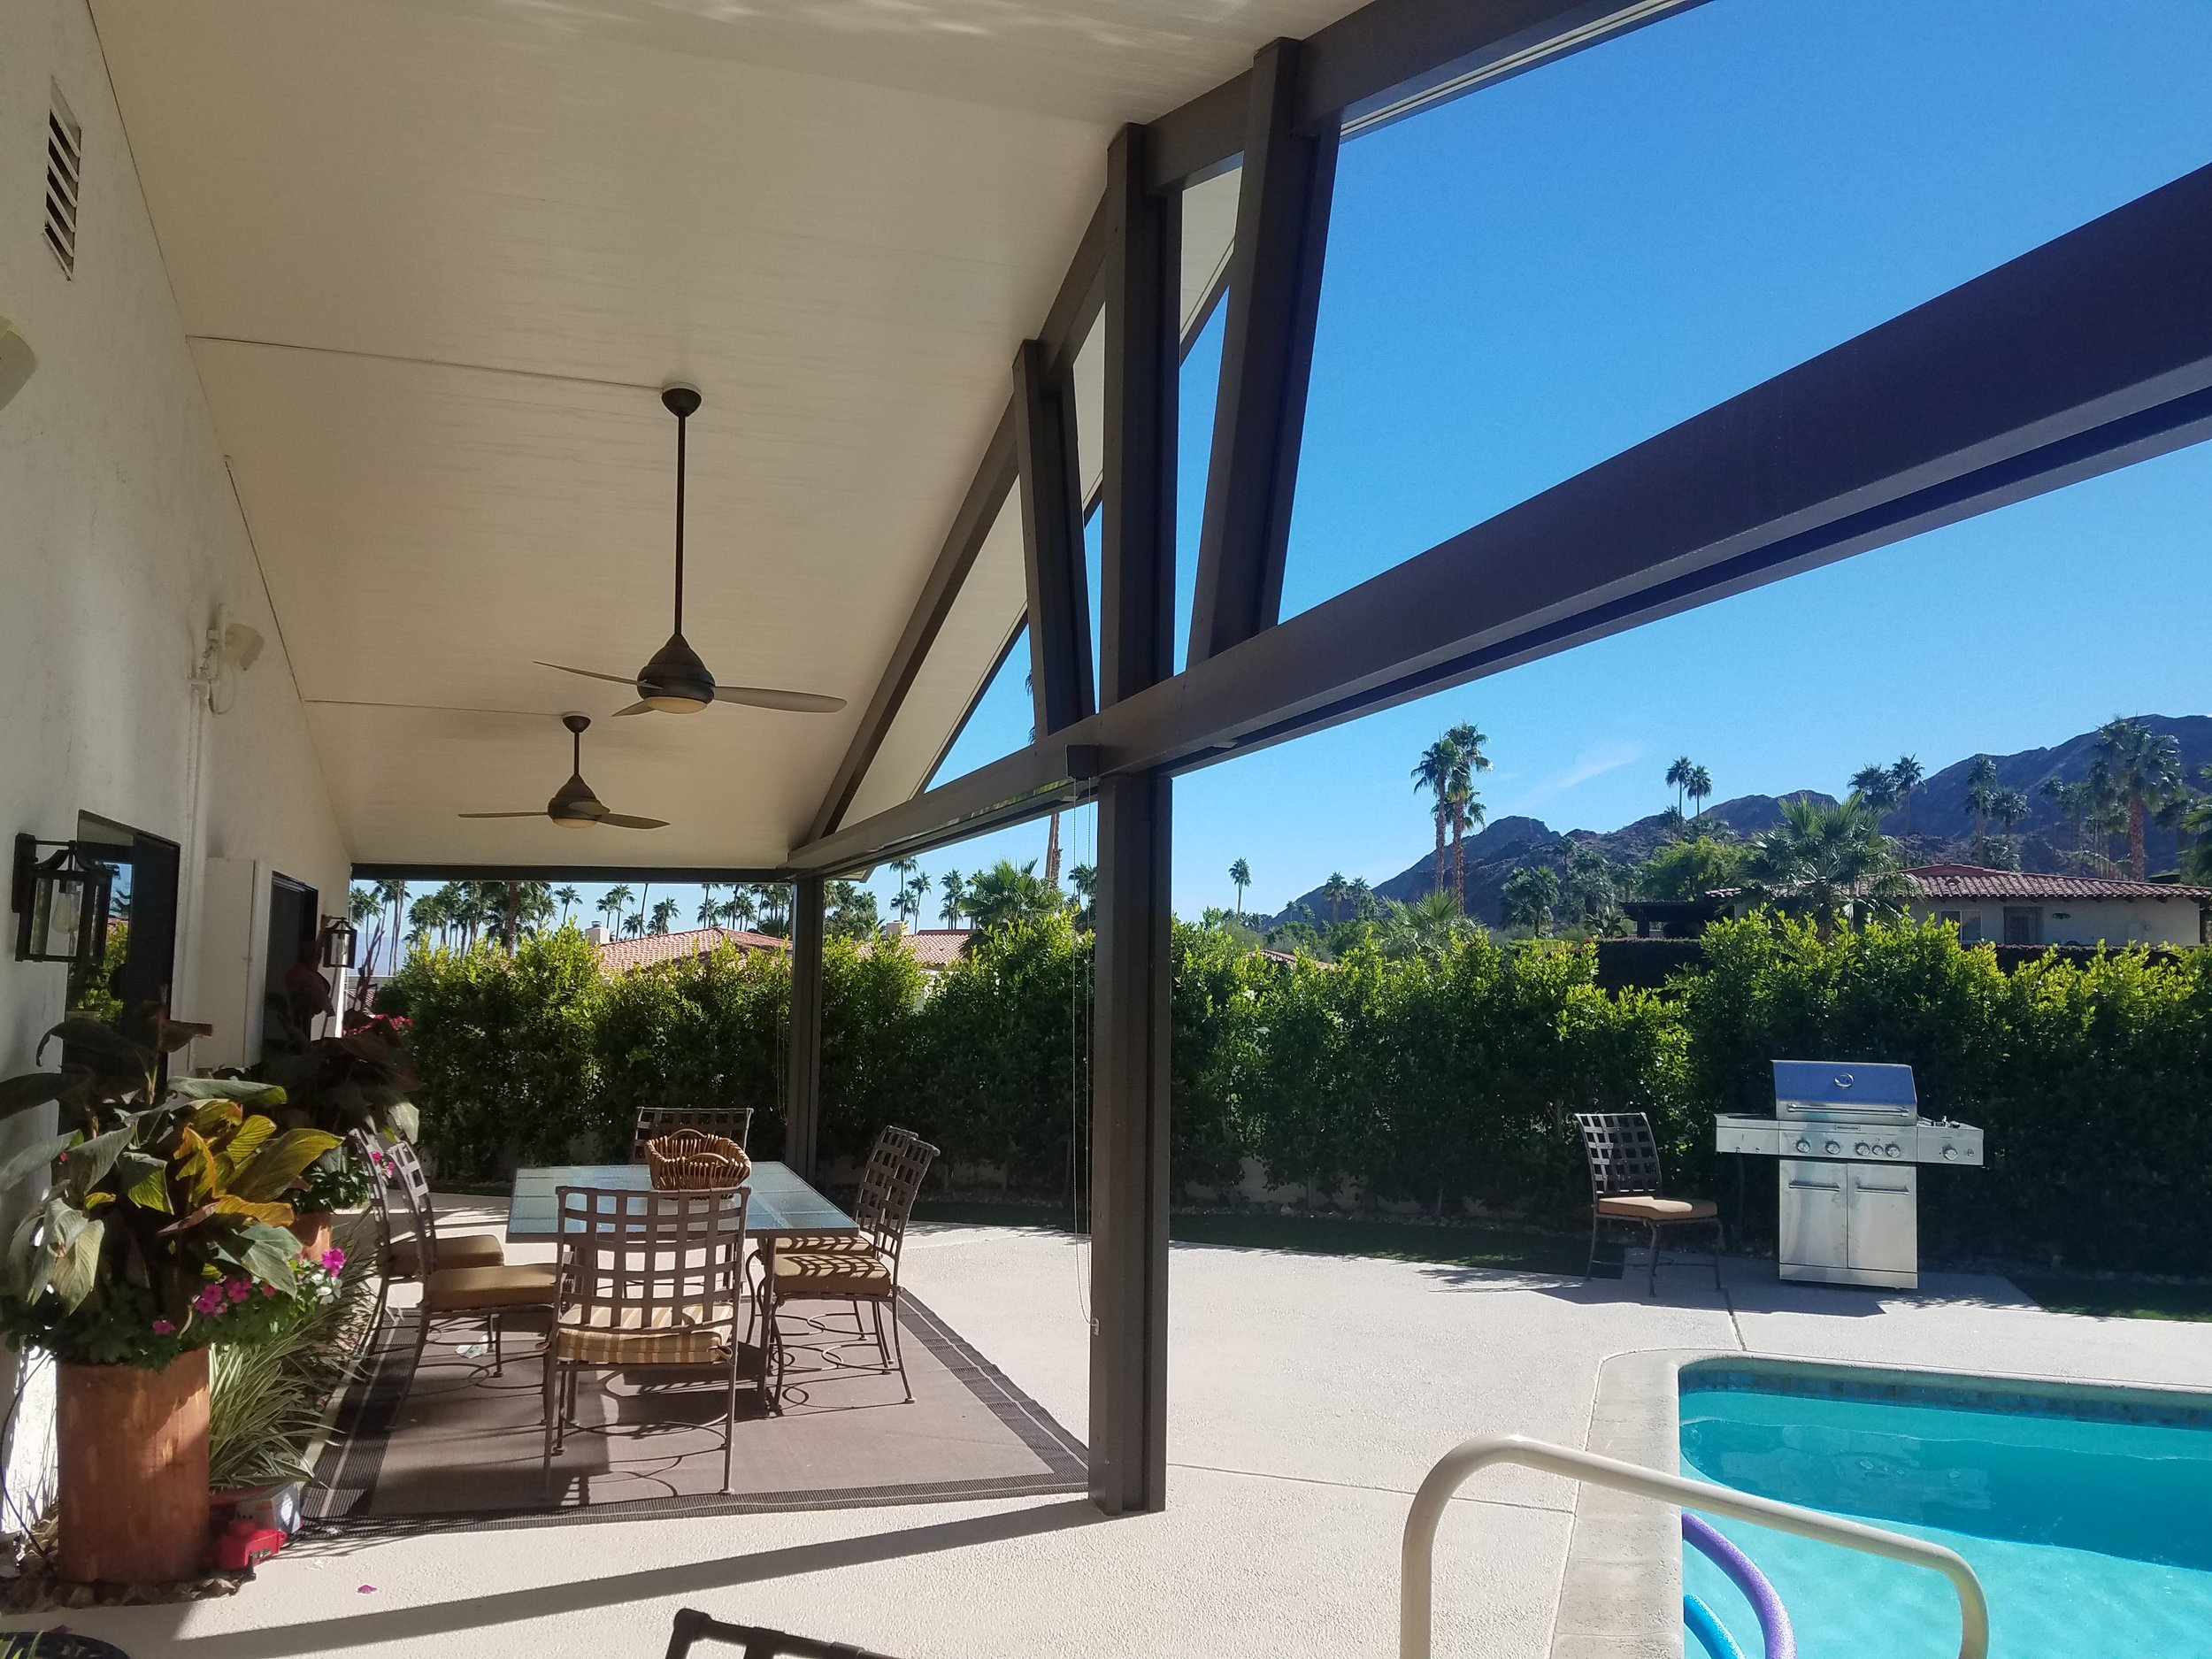 Insulated solid roof patio cover in Yucaipa, CA